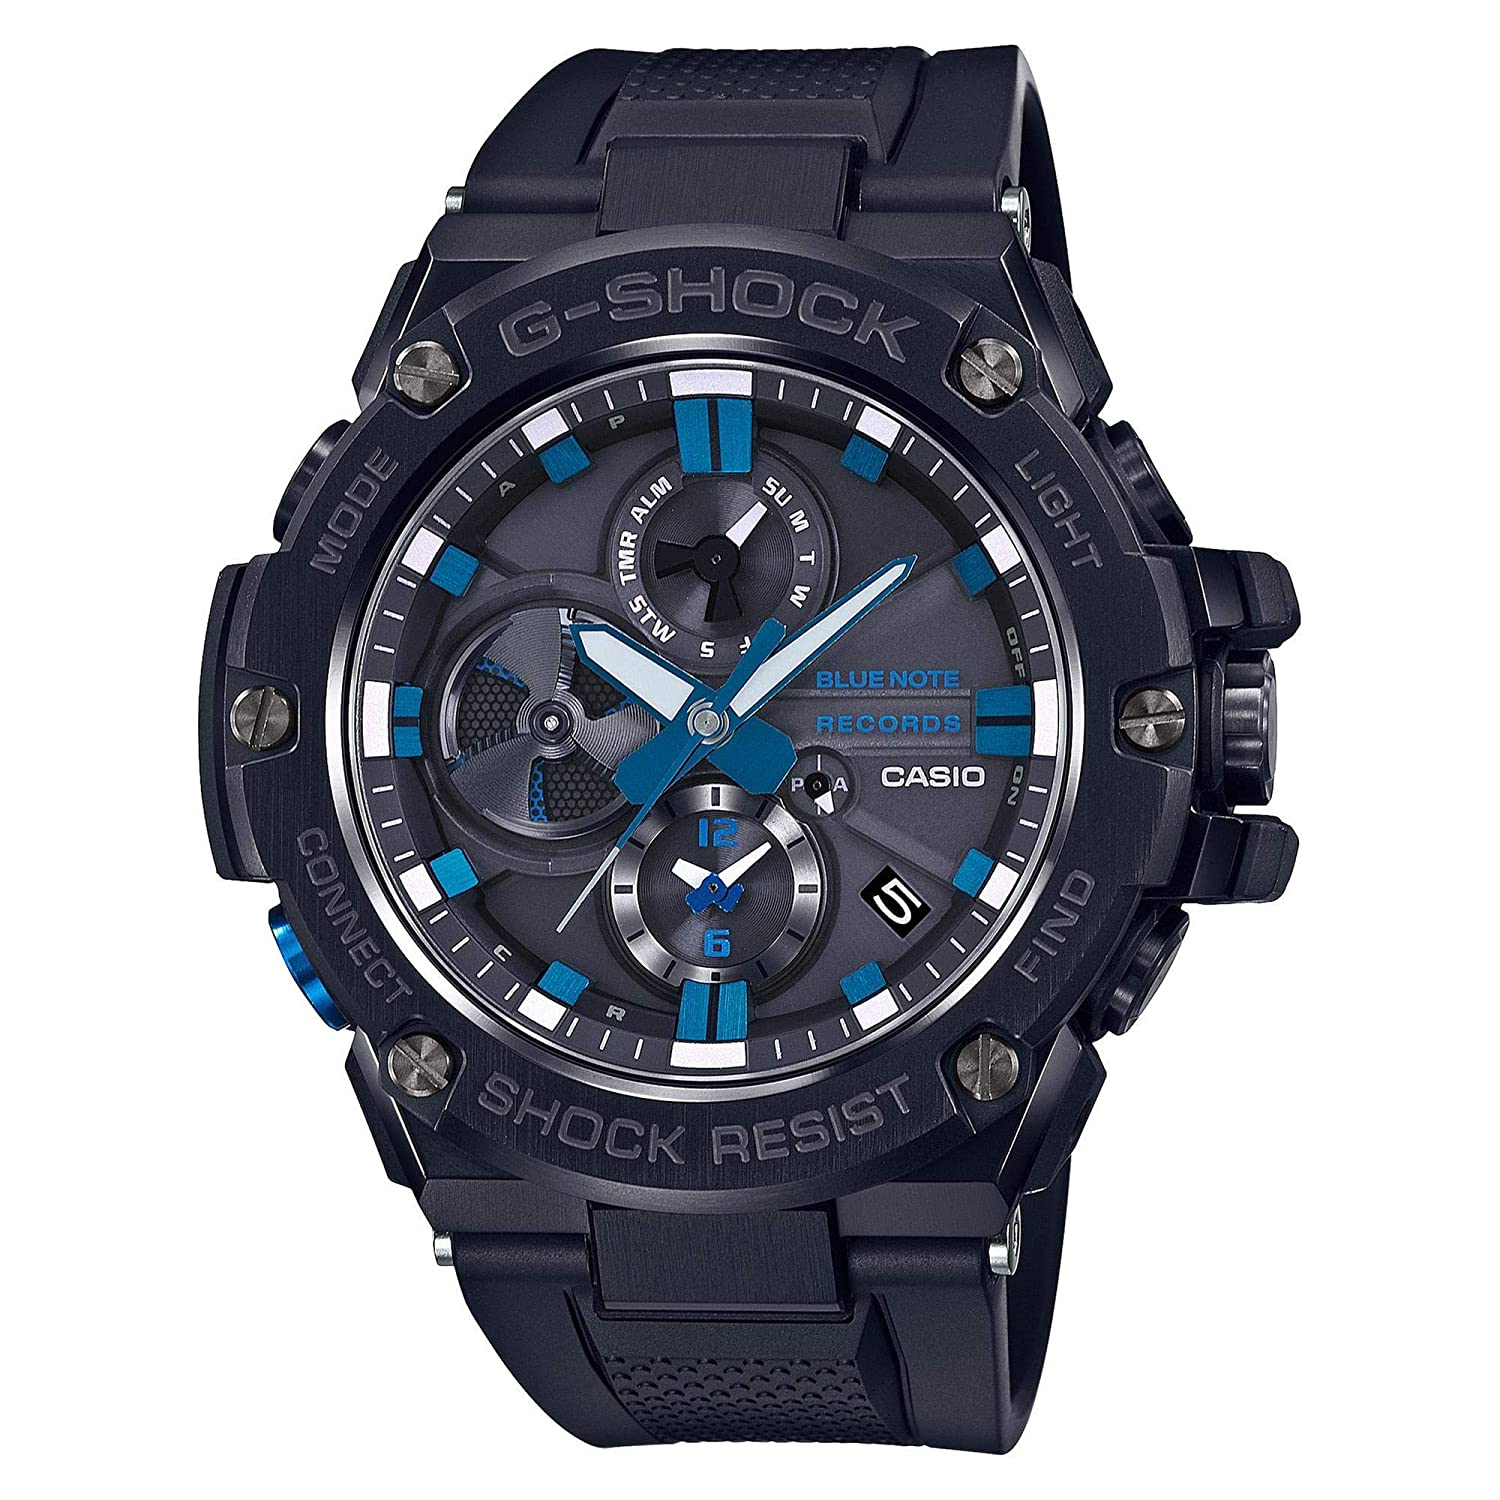 Mens Casio G-Shock G-Steel Limited Edition Blue Note Records Bluetooth Watch GSTB100BNR-1A